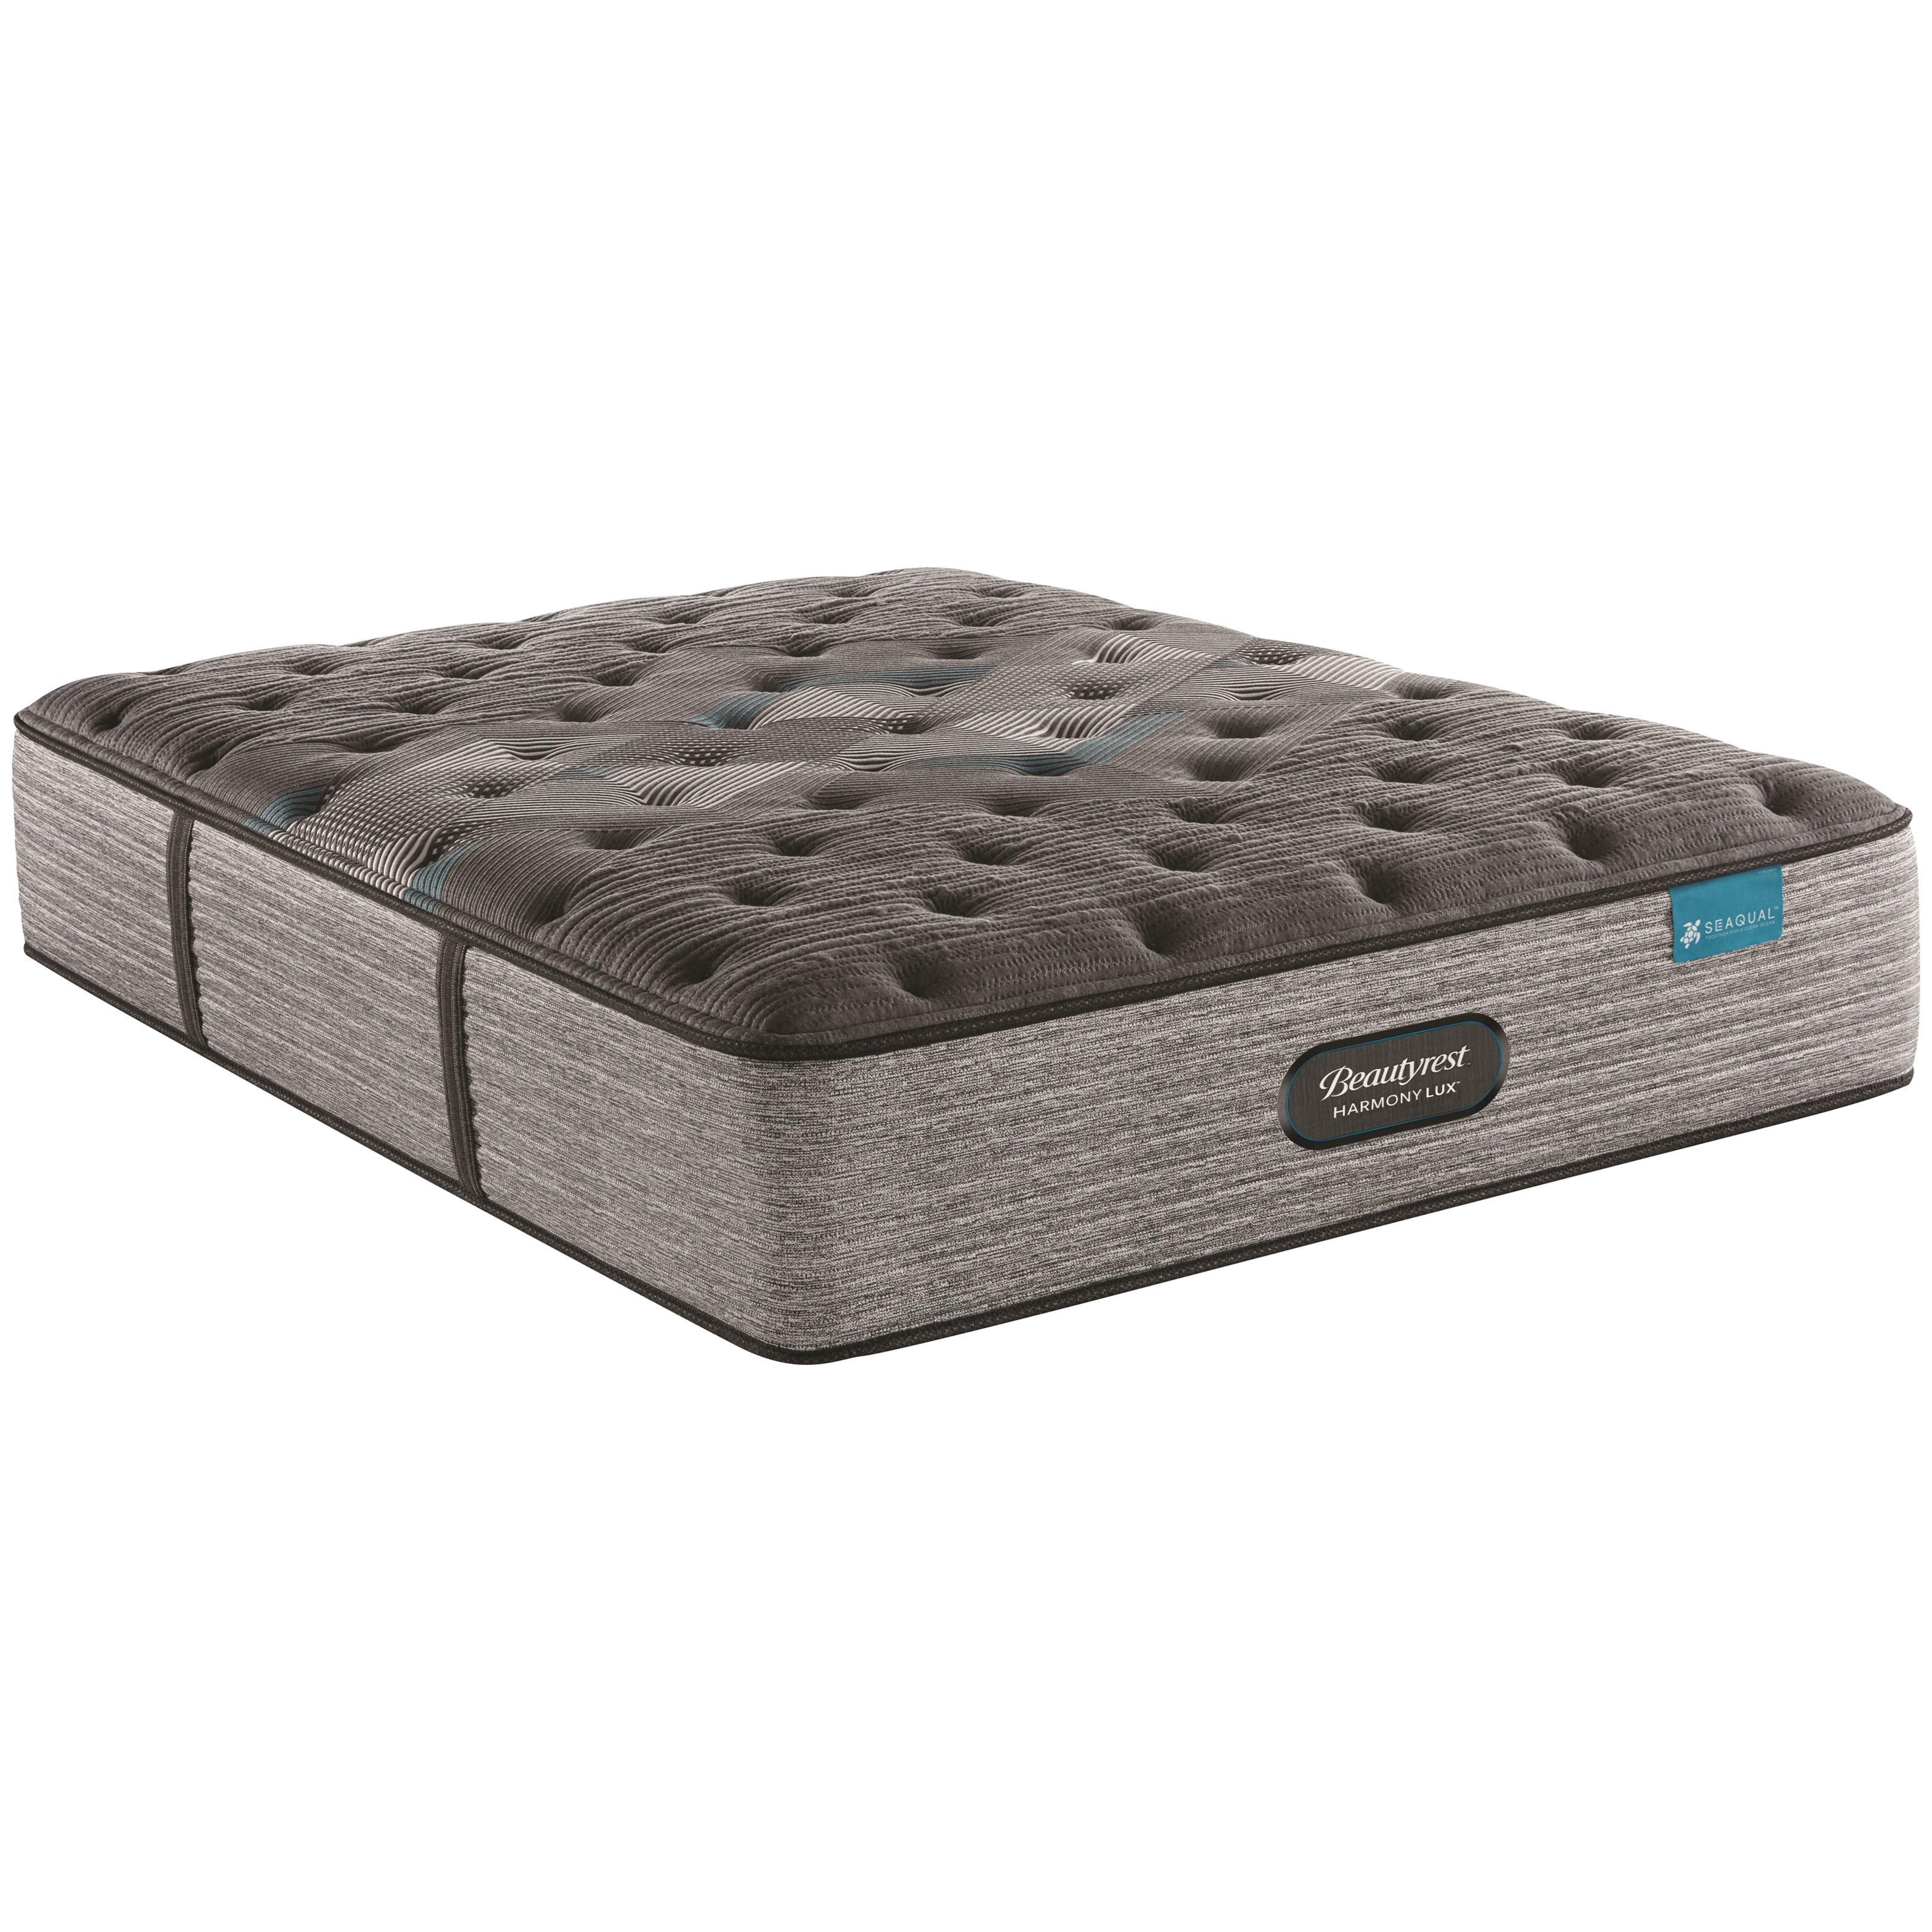 "Diamond Series Medium King 14 3/4"" Medium Firm Premium Mattress by Beautyrest at Rotmans"